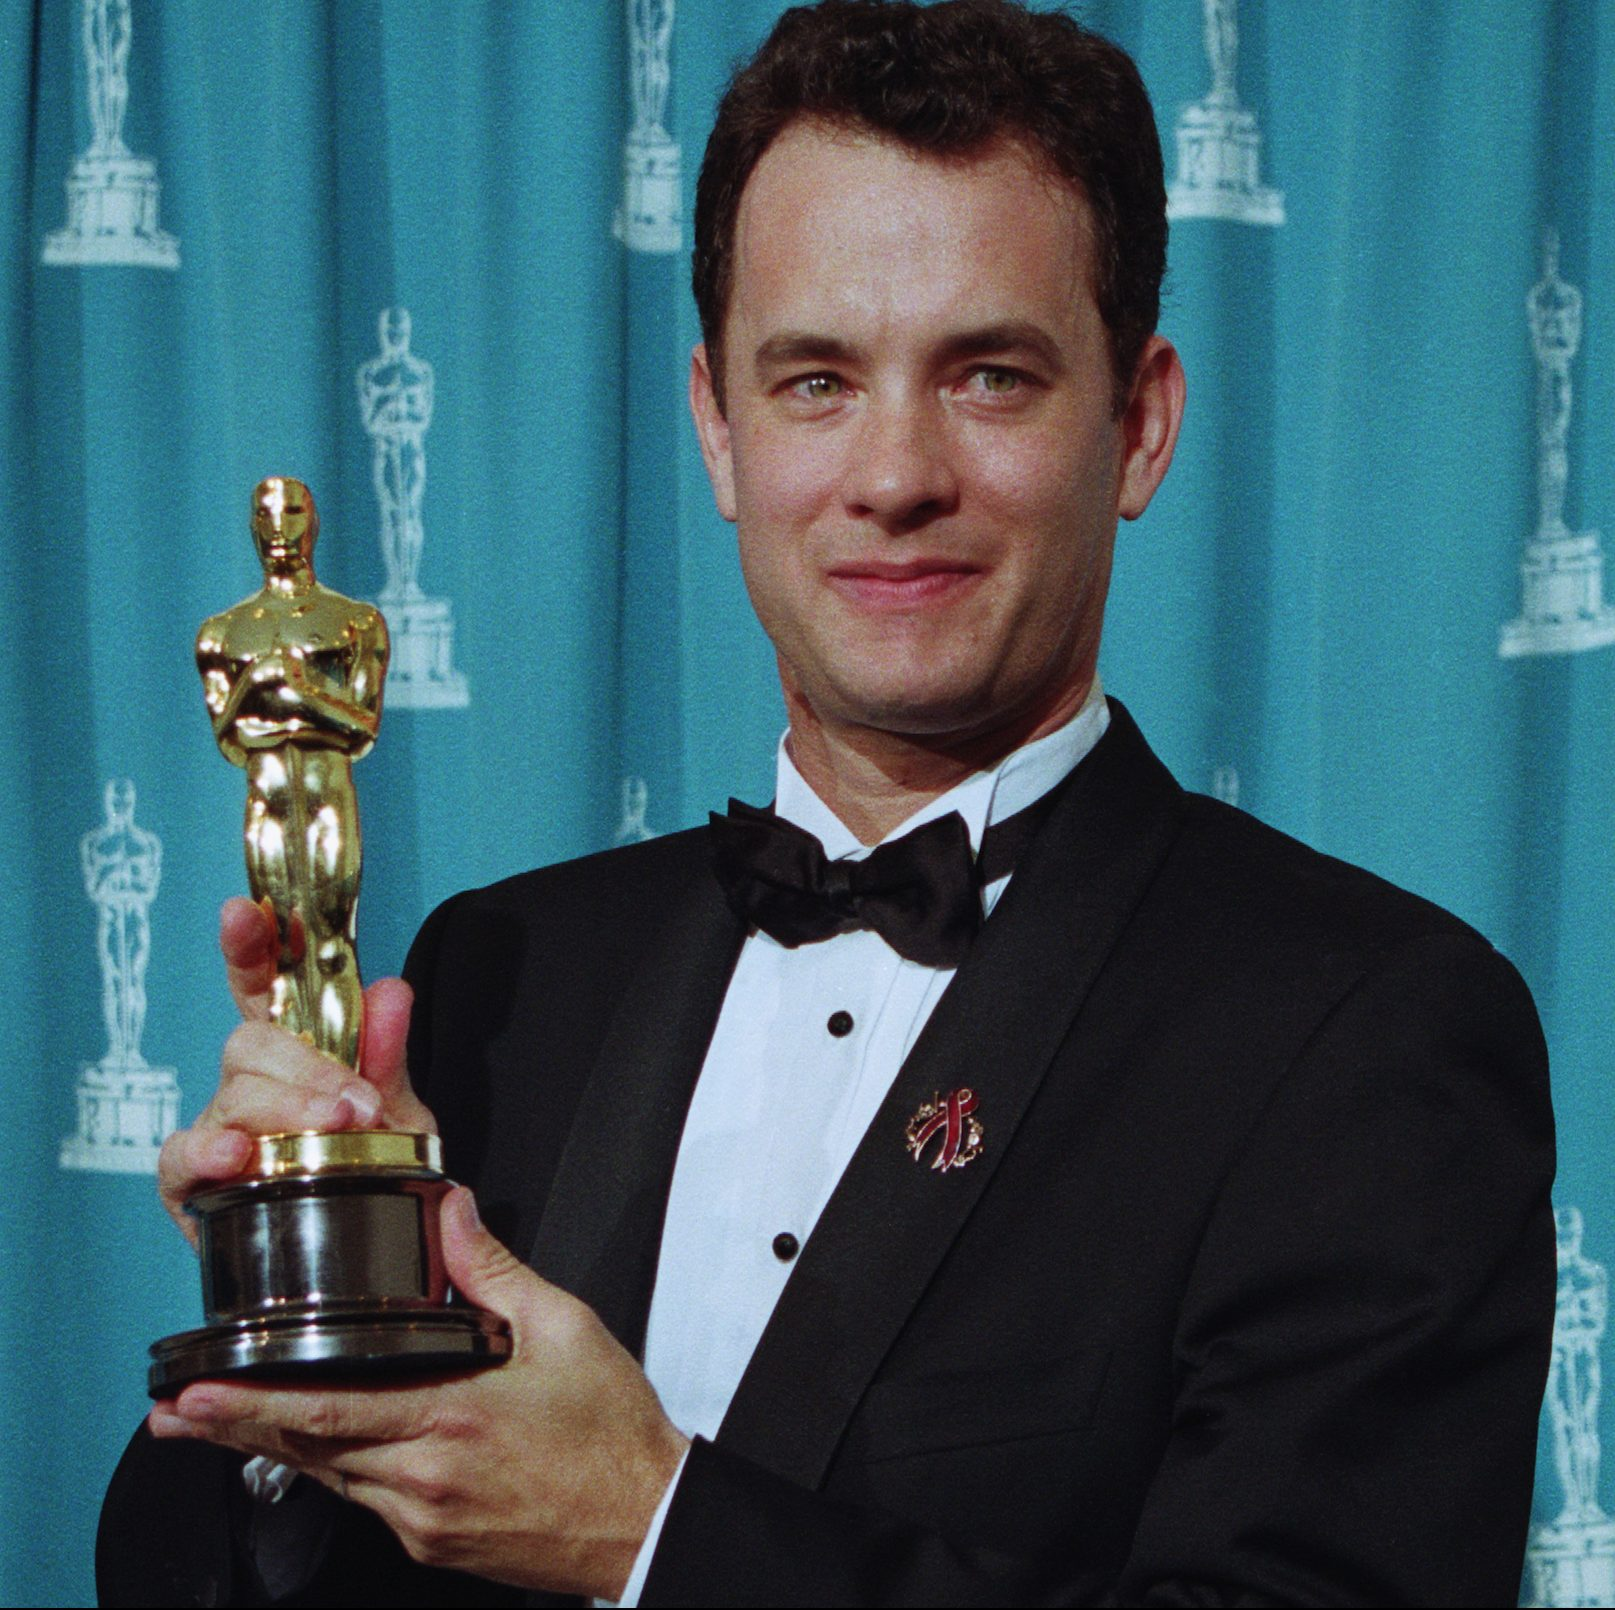 1 292 e1608540506525 10 Things You Probably Didn't Know About Tom Hanks